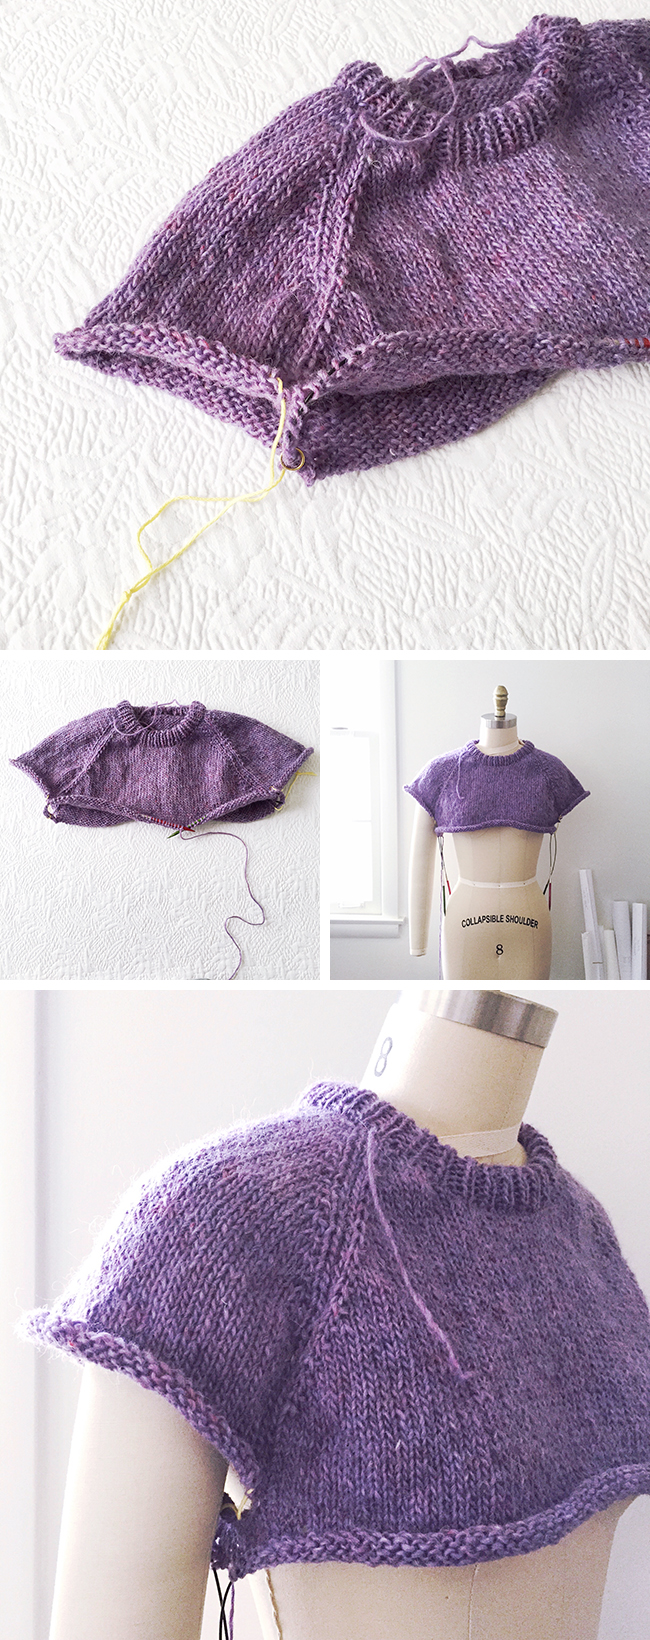 How To Improvise A Top Down Sweater Part 4 Separating The Sleeves